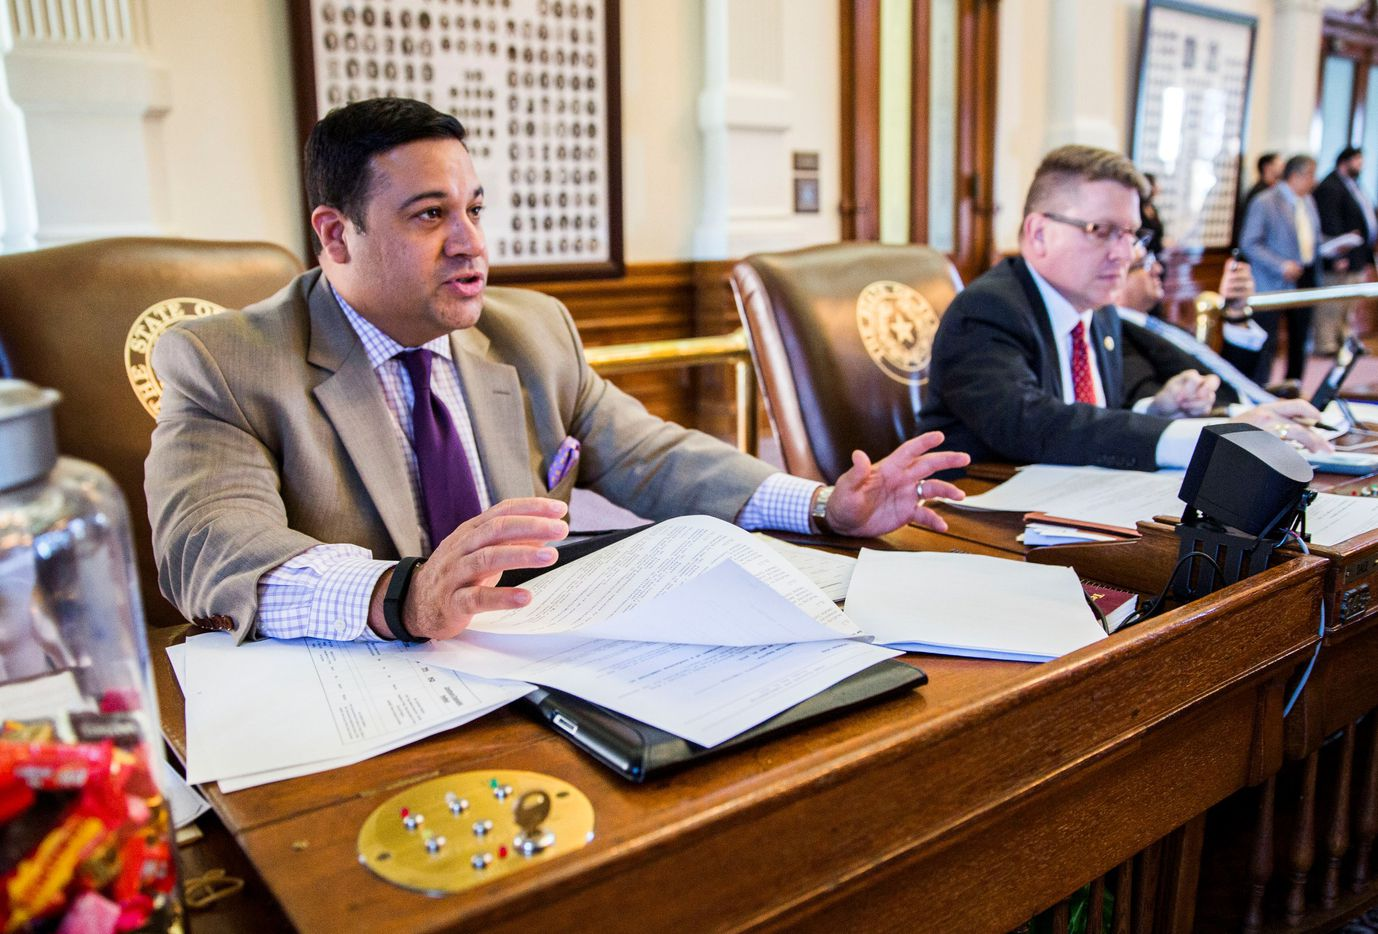 Rep. Jason Villalba, R-Dallas, shown at his desk in the state Capitol. Villalba's support for a pro-LGBT employment discrimination bill meant the measure passed committee this year for the first time. (Ashley Landis/The Dallas Morning News)